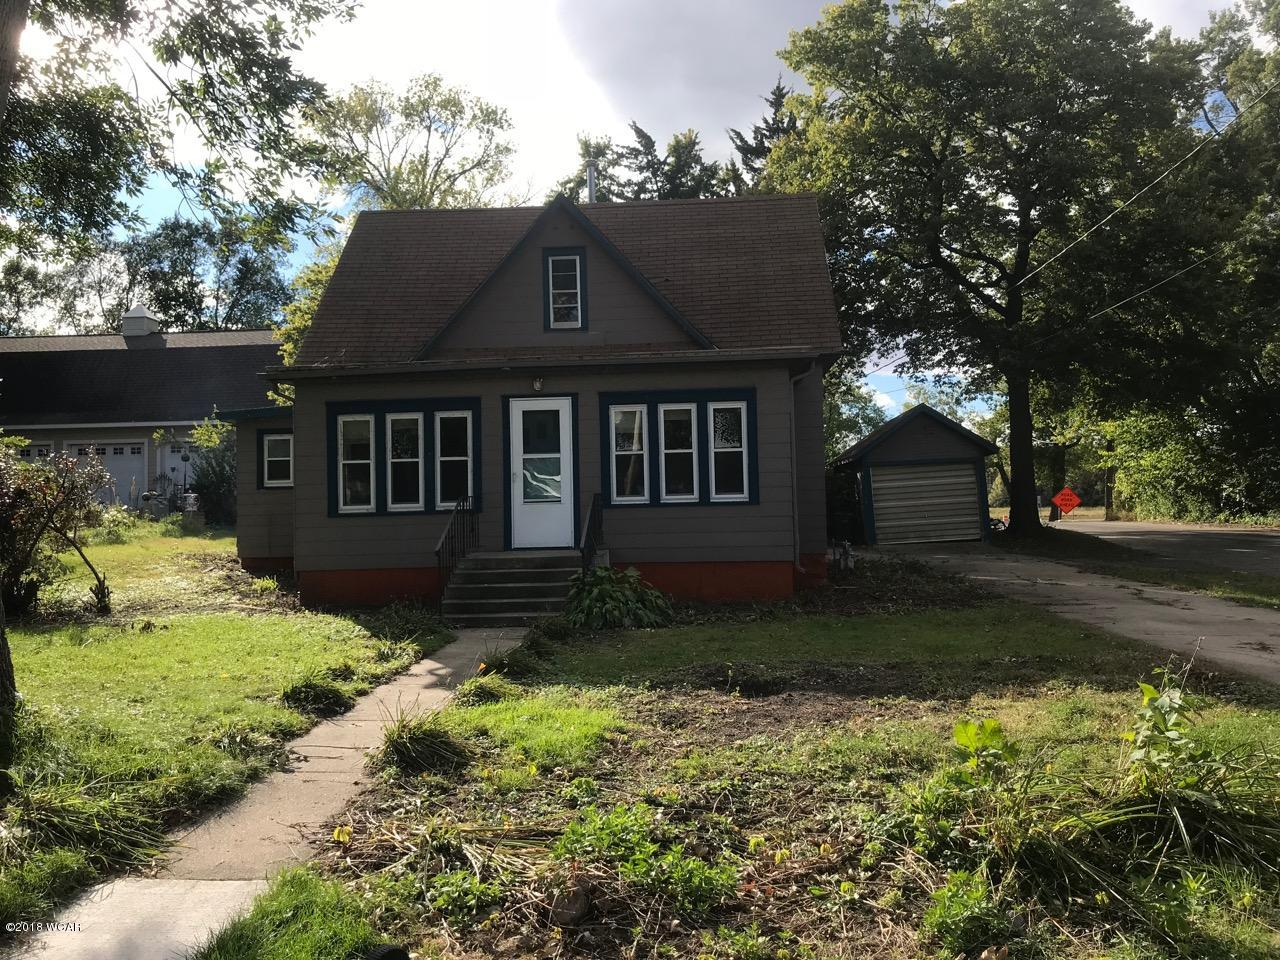 232 Lake Avenue,Spicer,3 Bedrooms Bedrooms,2 BathroomsBathrooms,Single Family,Lake Avenue,6032510